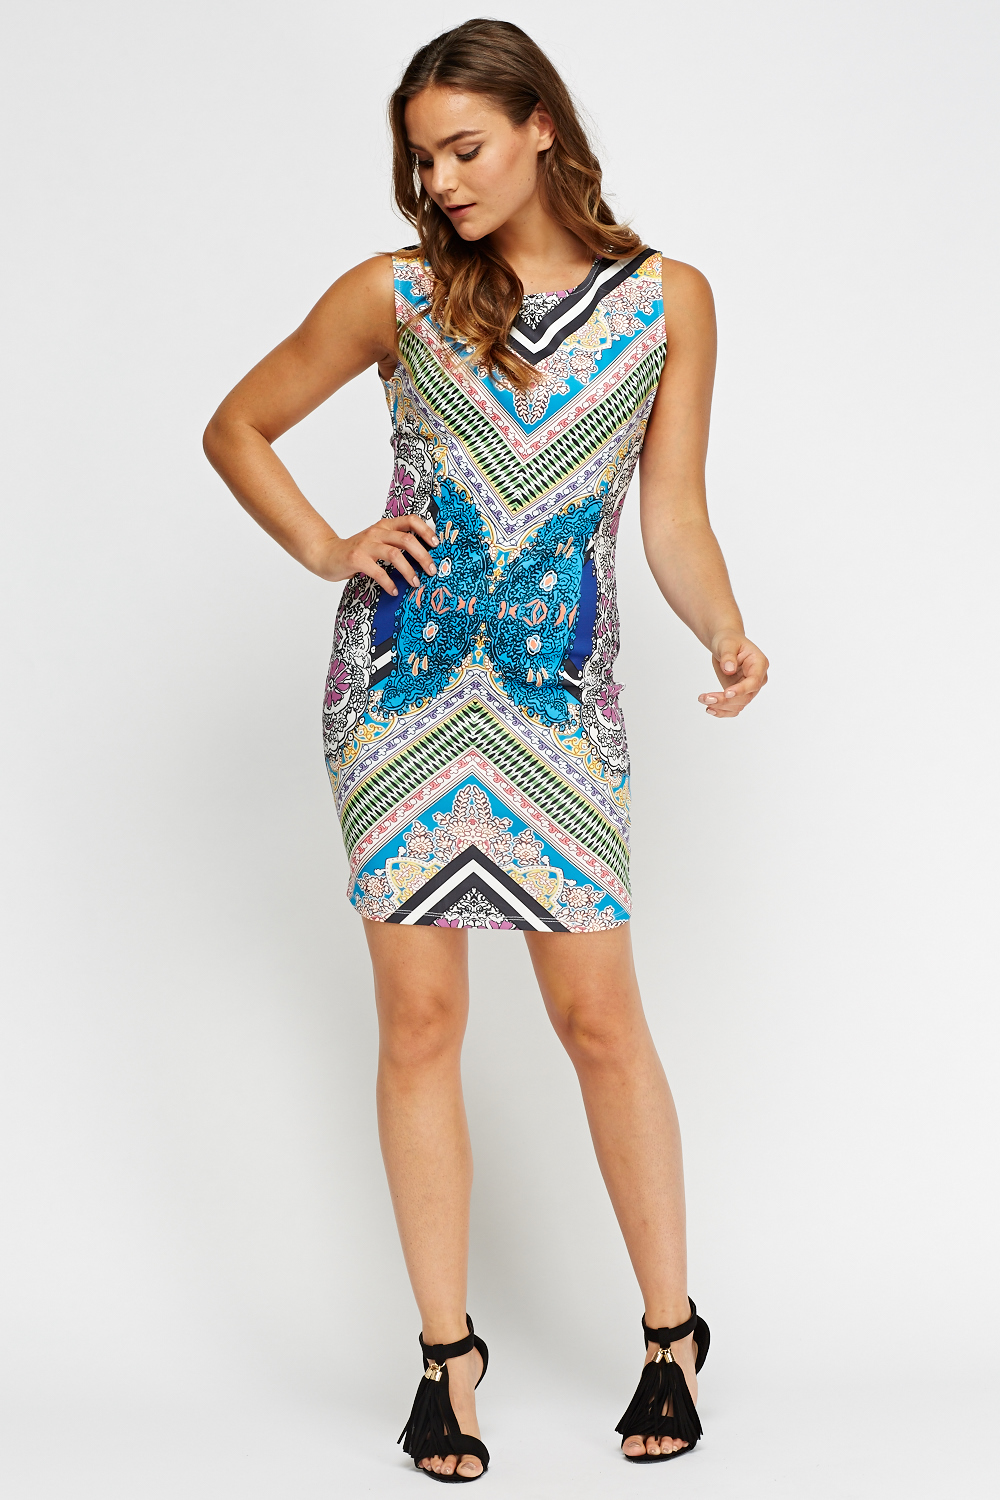 3458ea93894879 Mix Print Sleeveless Bodycon Dress - Just £2